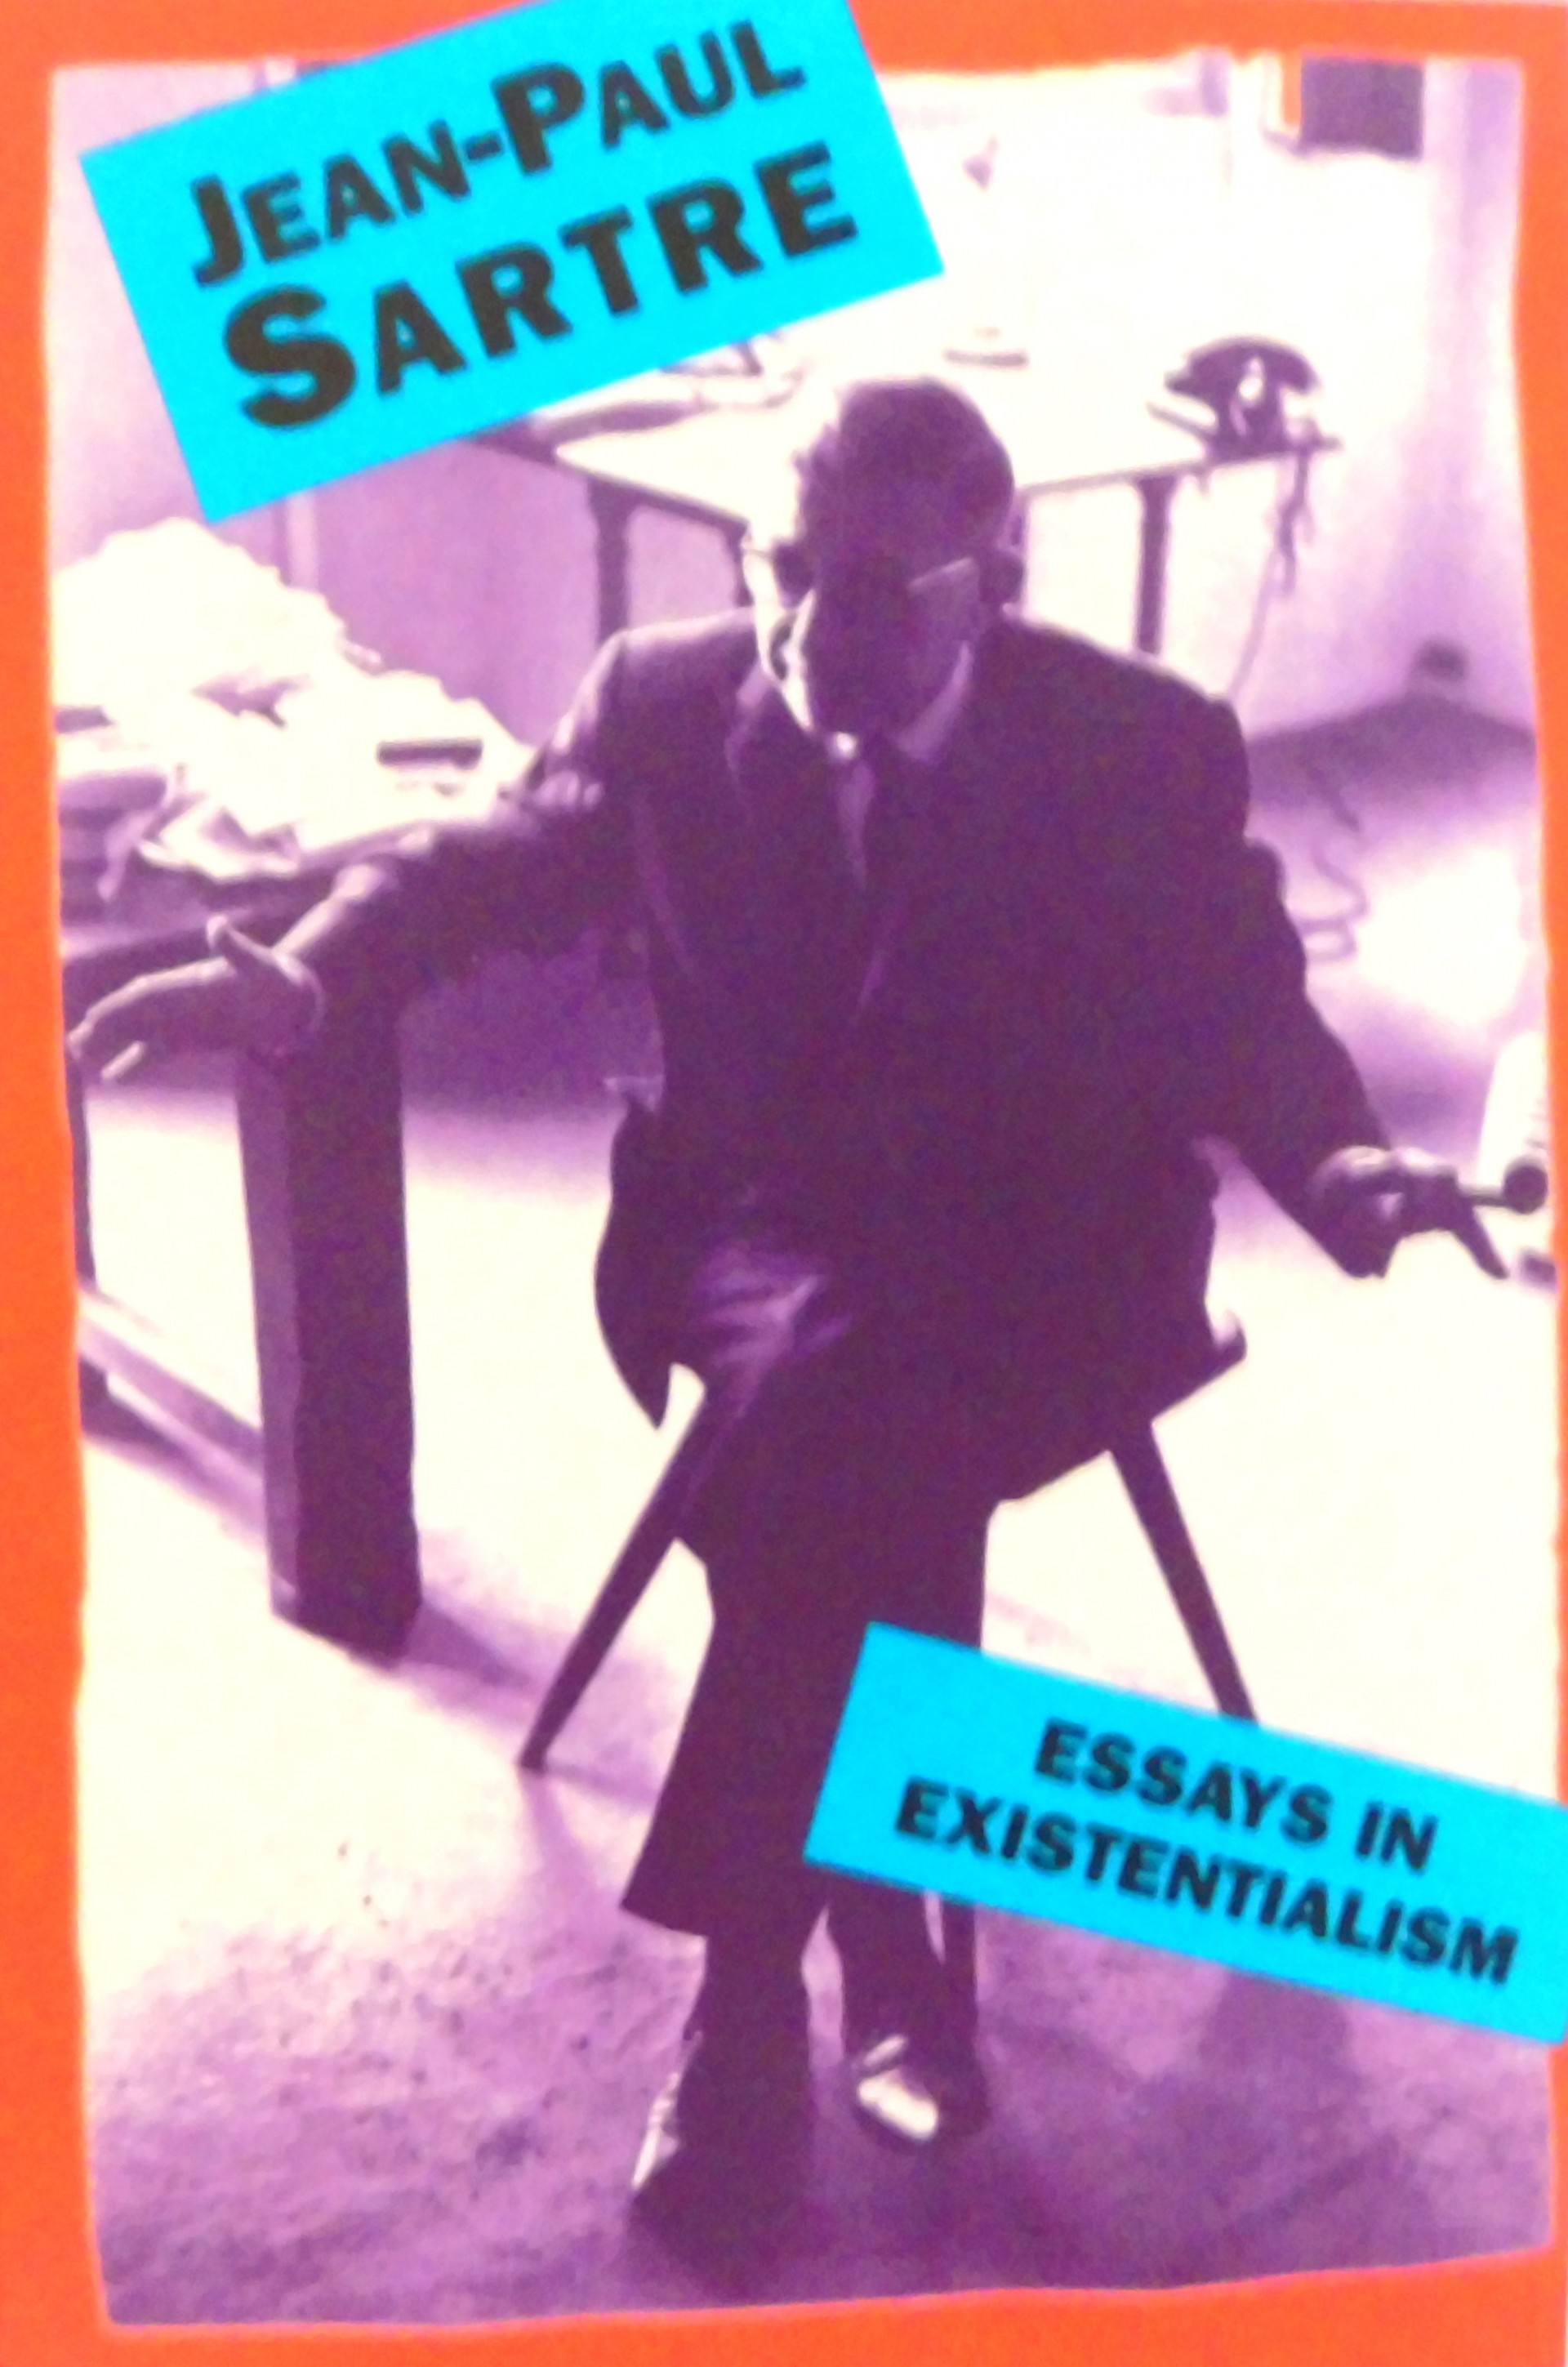 007 X Essay Example Essays In Outstanding Existentialism Pdf Sartre 1920